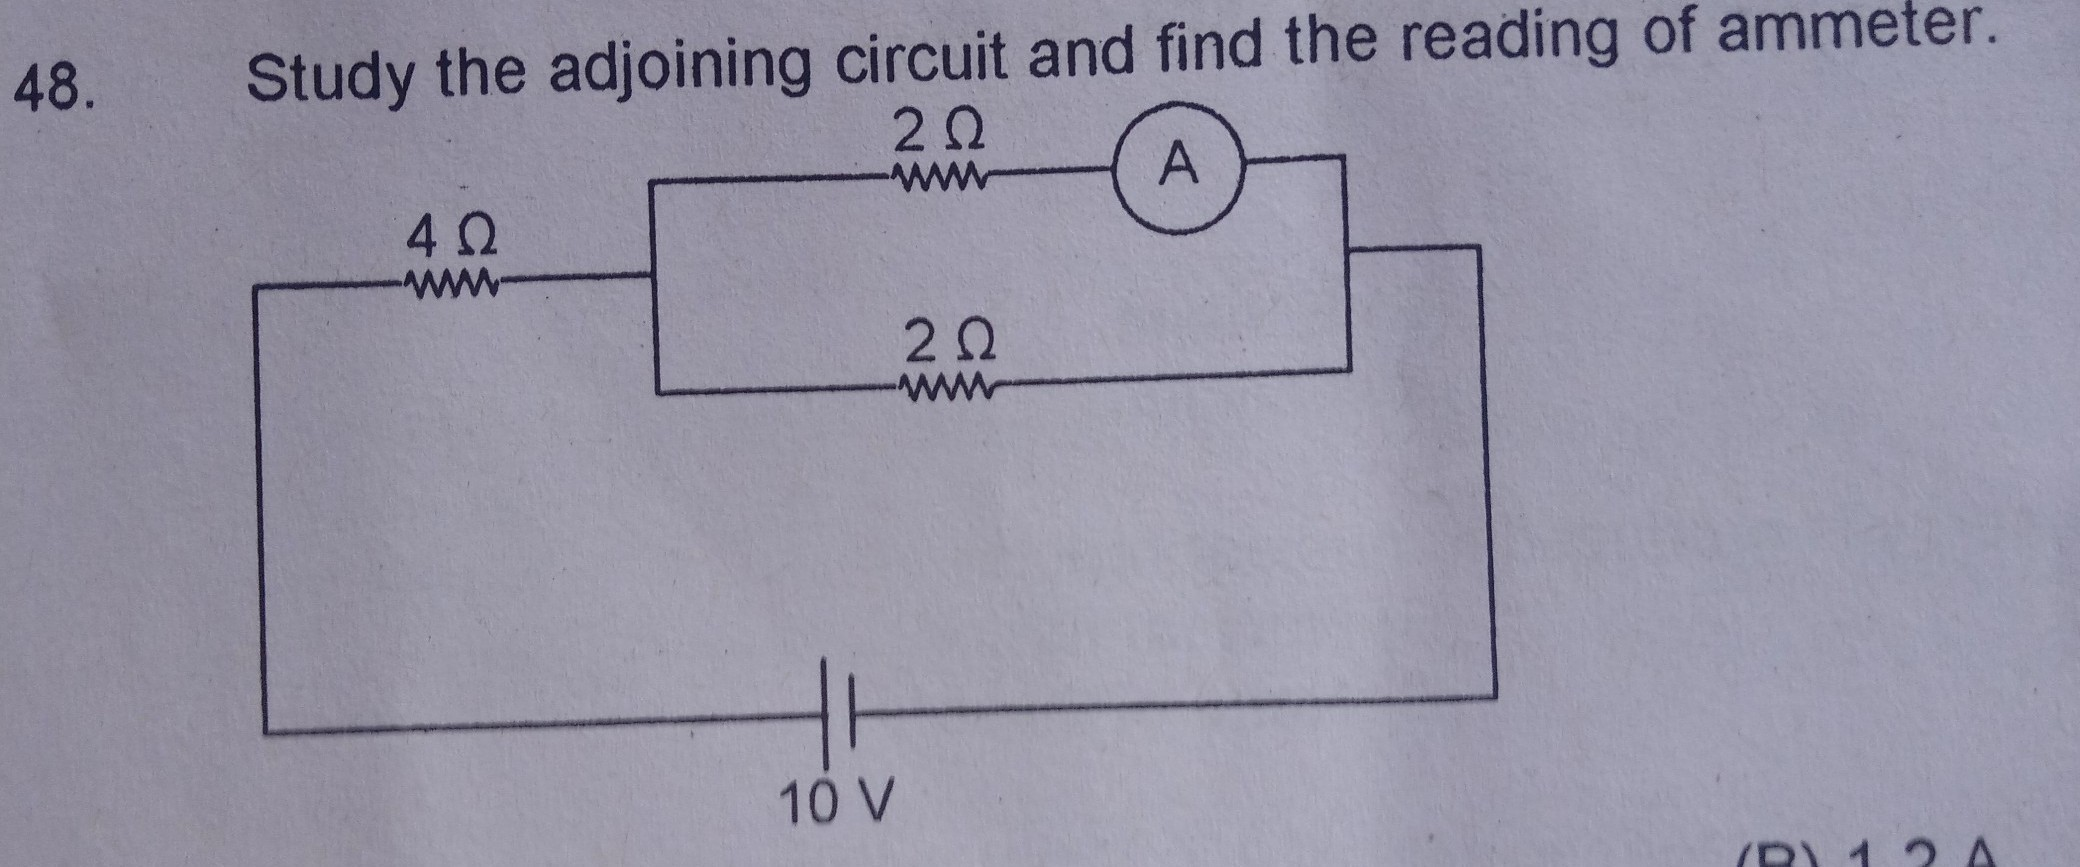 Study The Adjoining Circuit And Find Reading Of Ammeter Diagram With Download